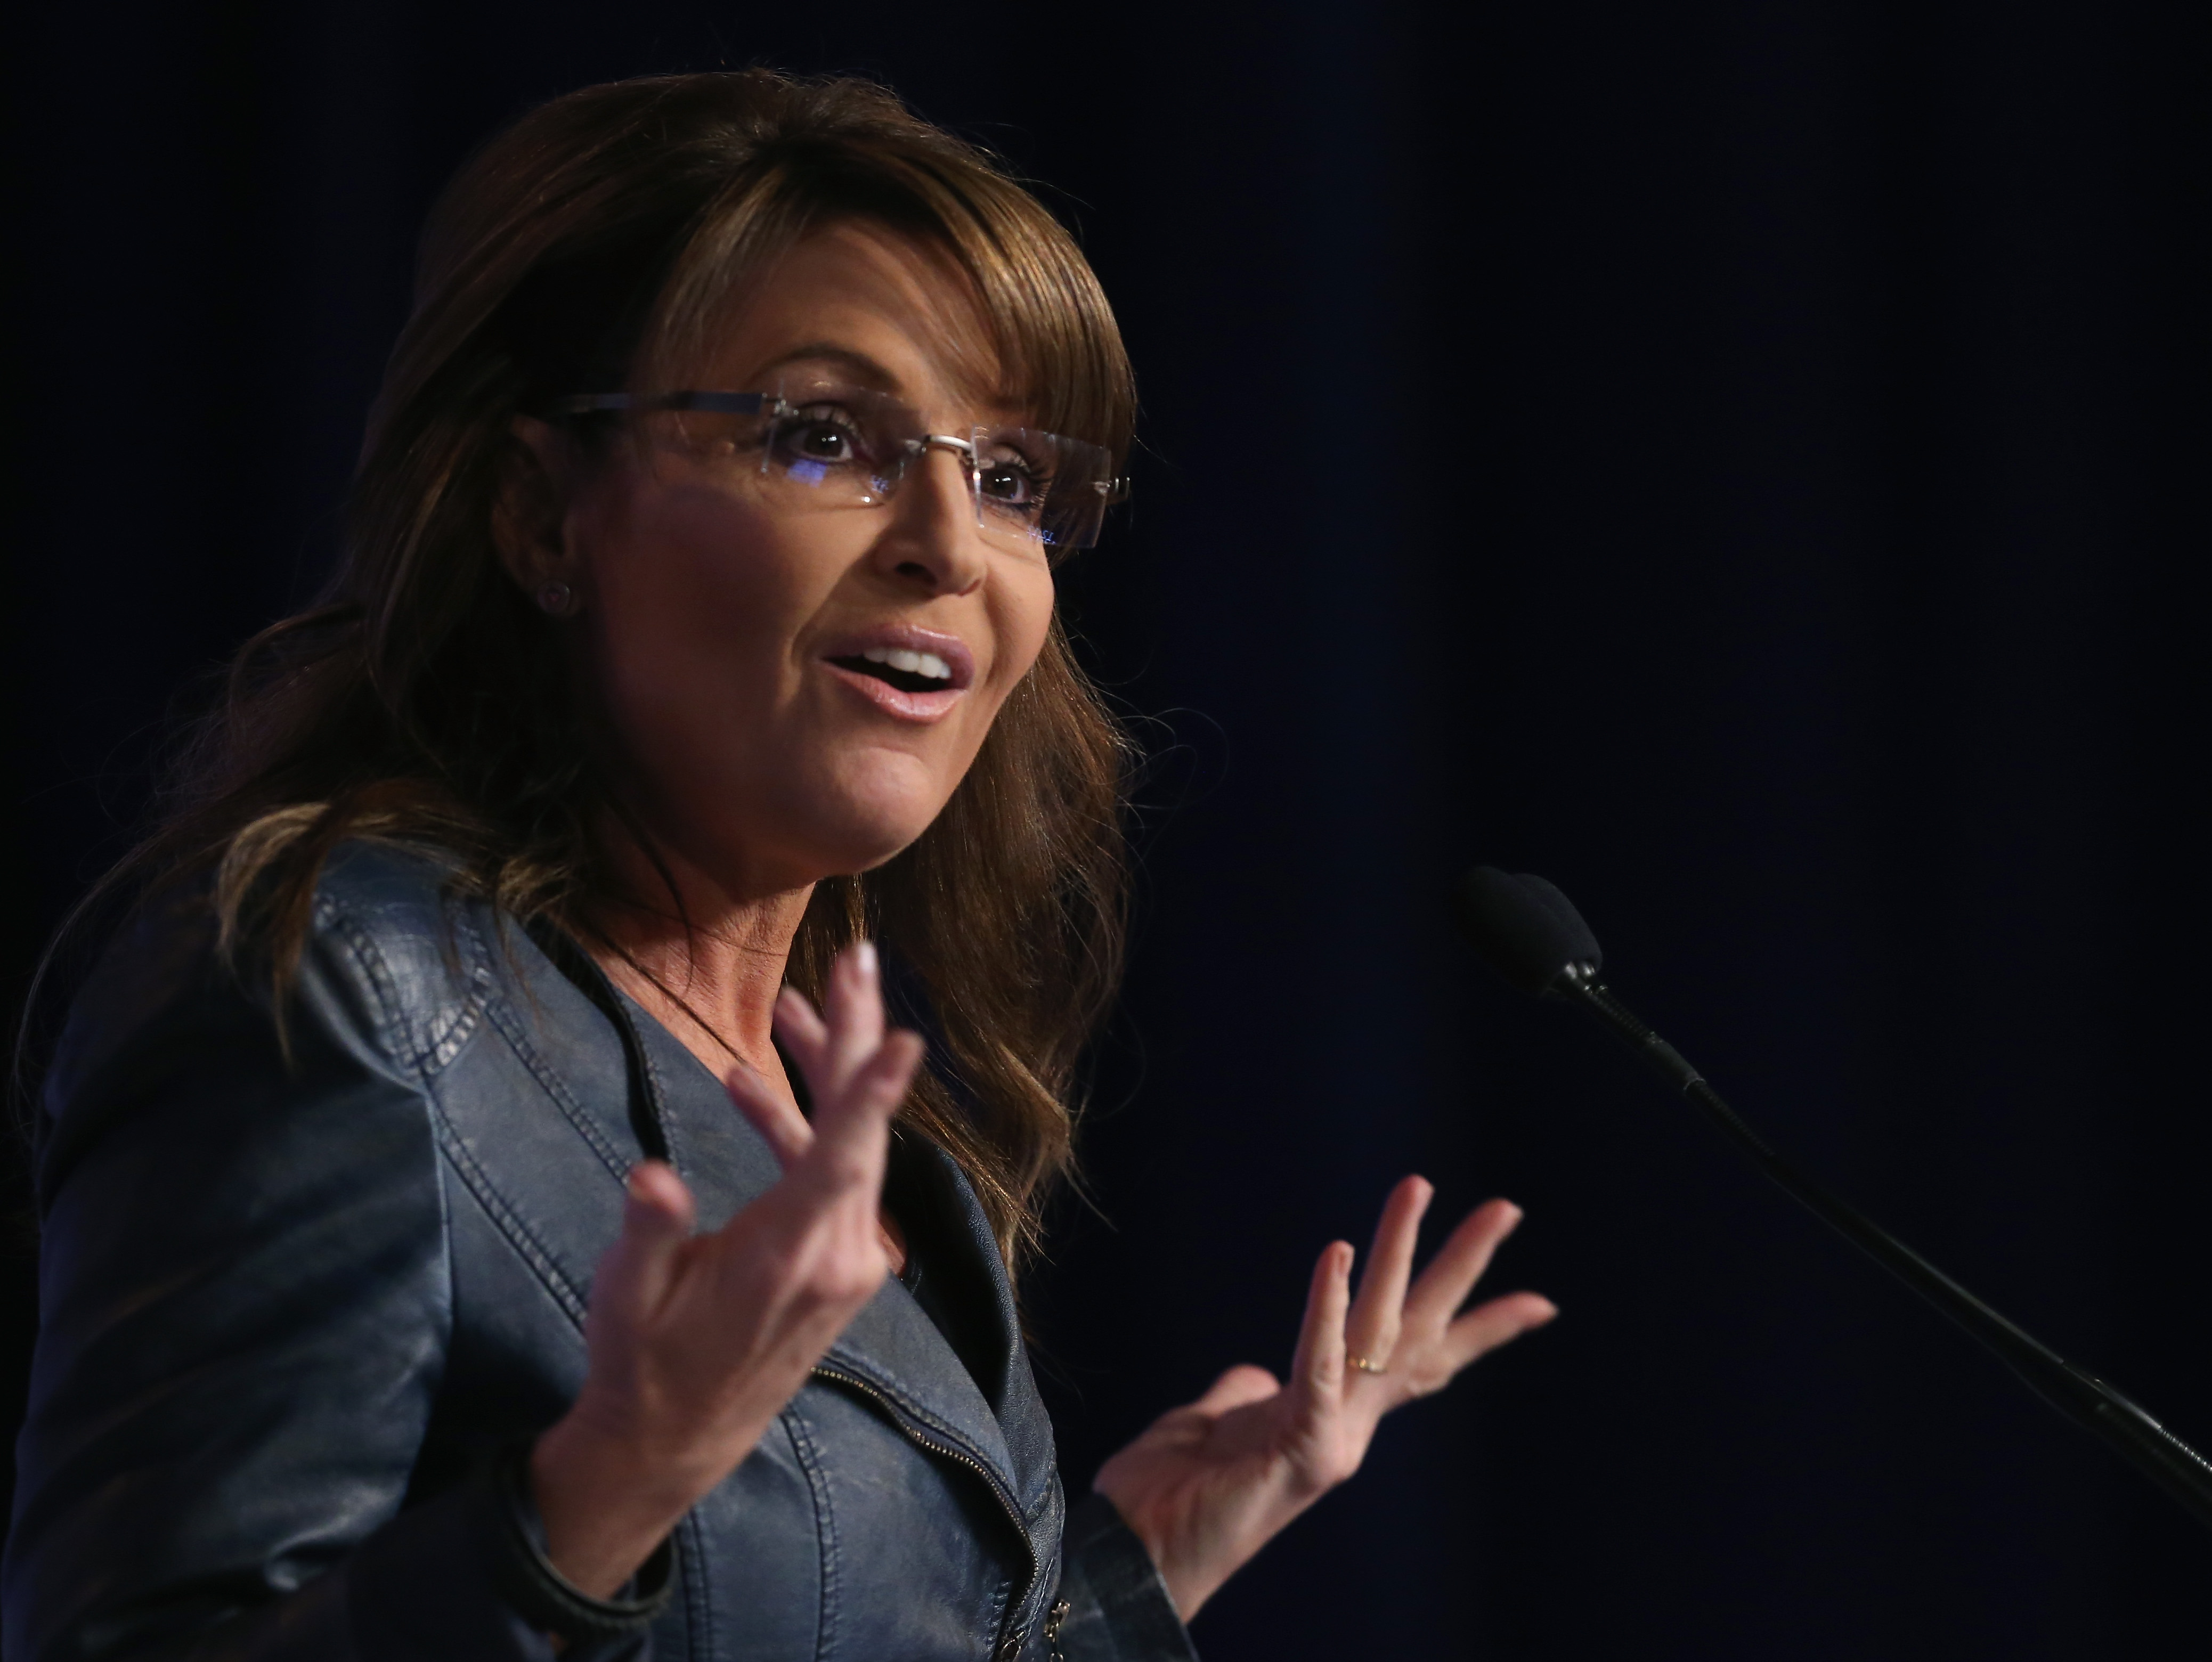 Sarah Palin speaks at the 2014 Values Voter Summit Sept. 26, 2014 in Washington, DC.